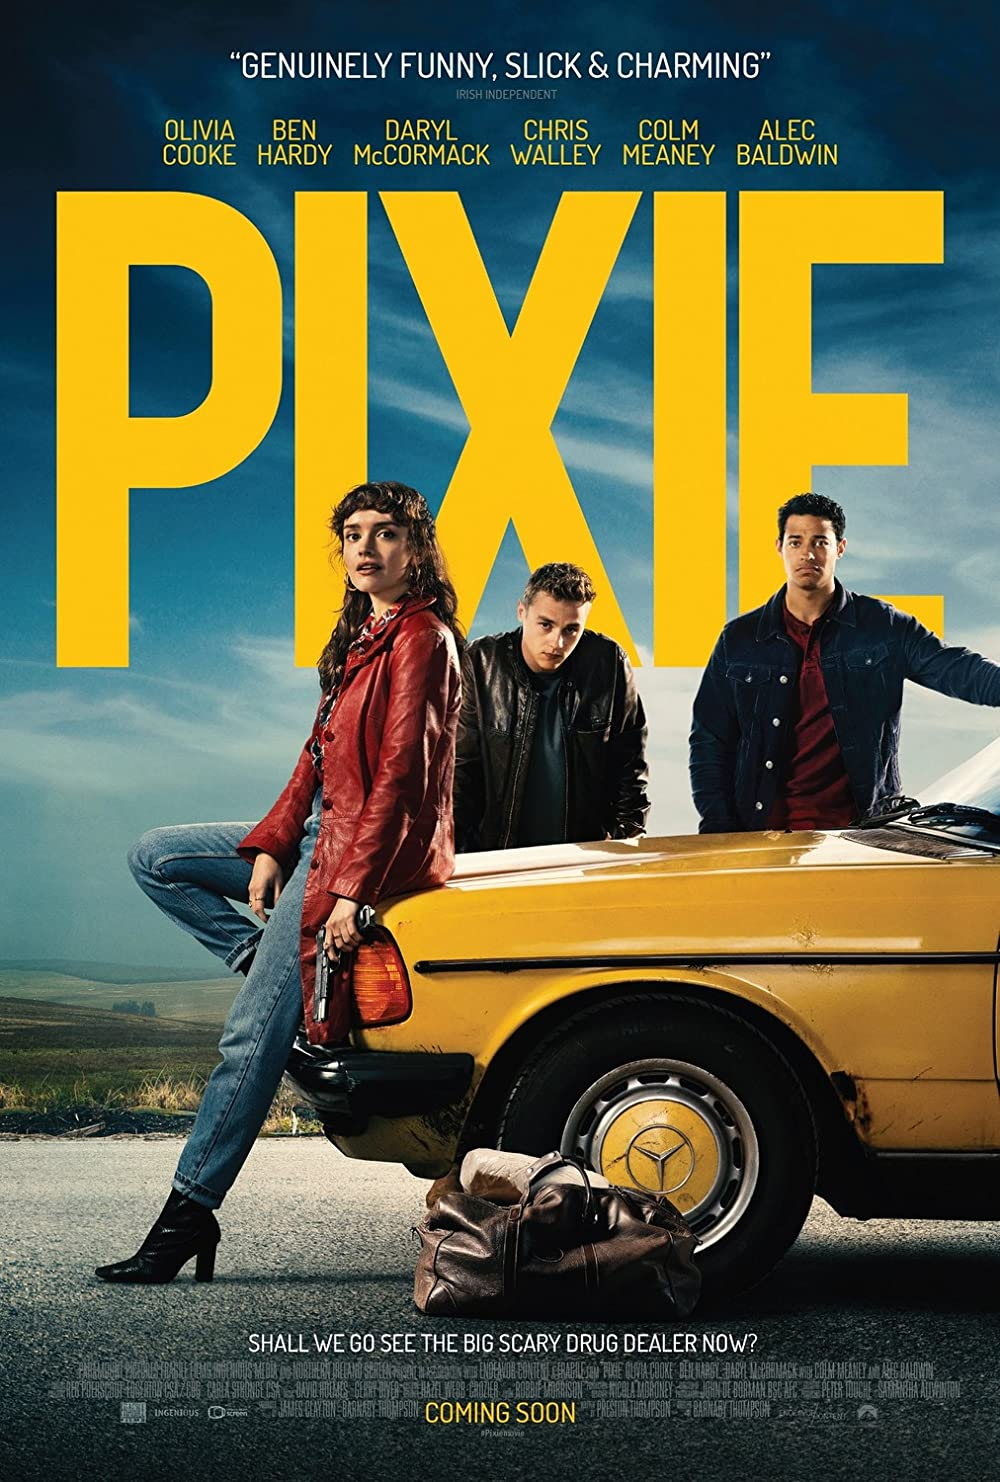 Pixie 2020 English 720p HDRip 800MB | 300MB Download